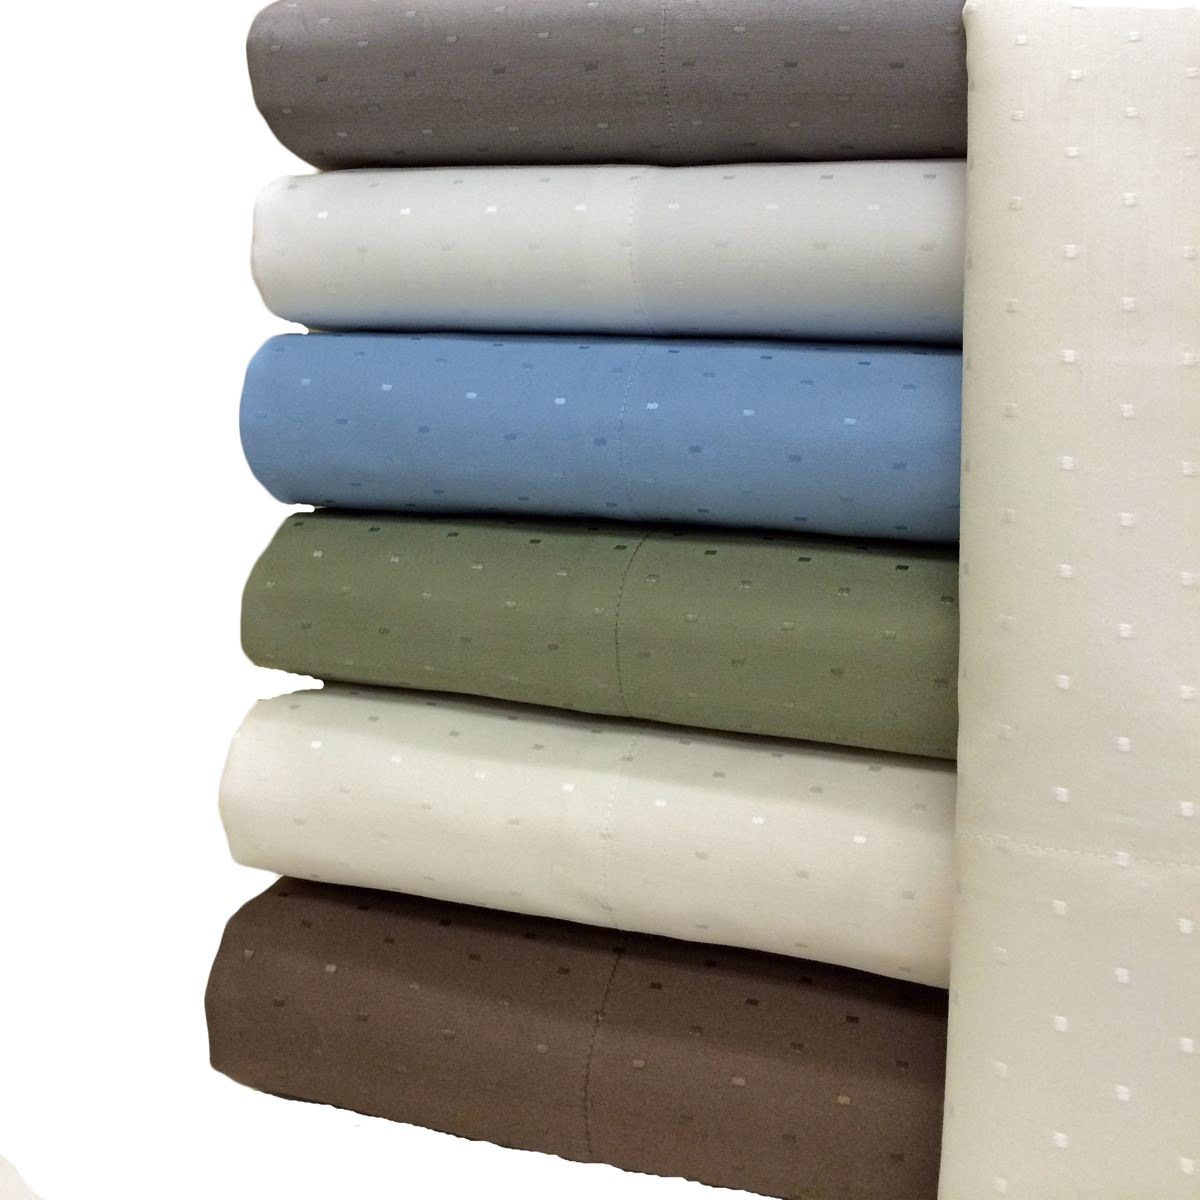 Royal Tradition:  Royal Tradition Woven Dots 600 Thread Count Sheet Sets. Easy Care & Wrinkle Free 600 Thread count sheets & Pillowcases. Cotton/Polyester combine the best of both worlds, cotton for the comfort and polyester for it's strength.